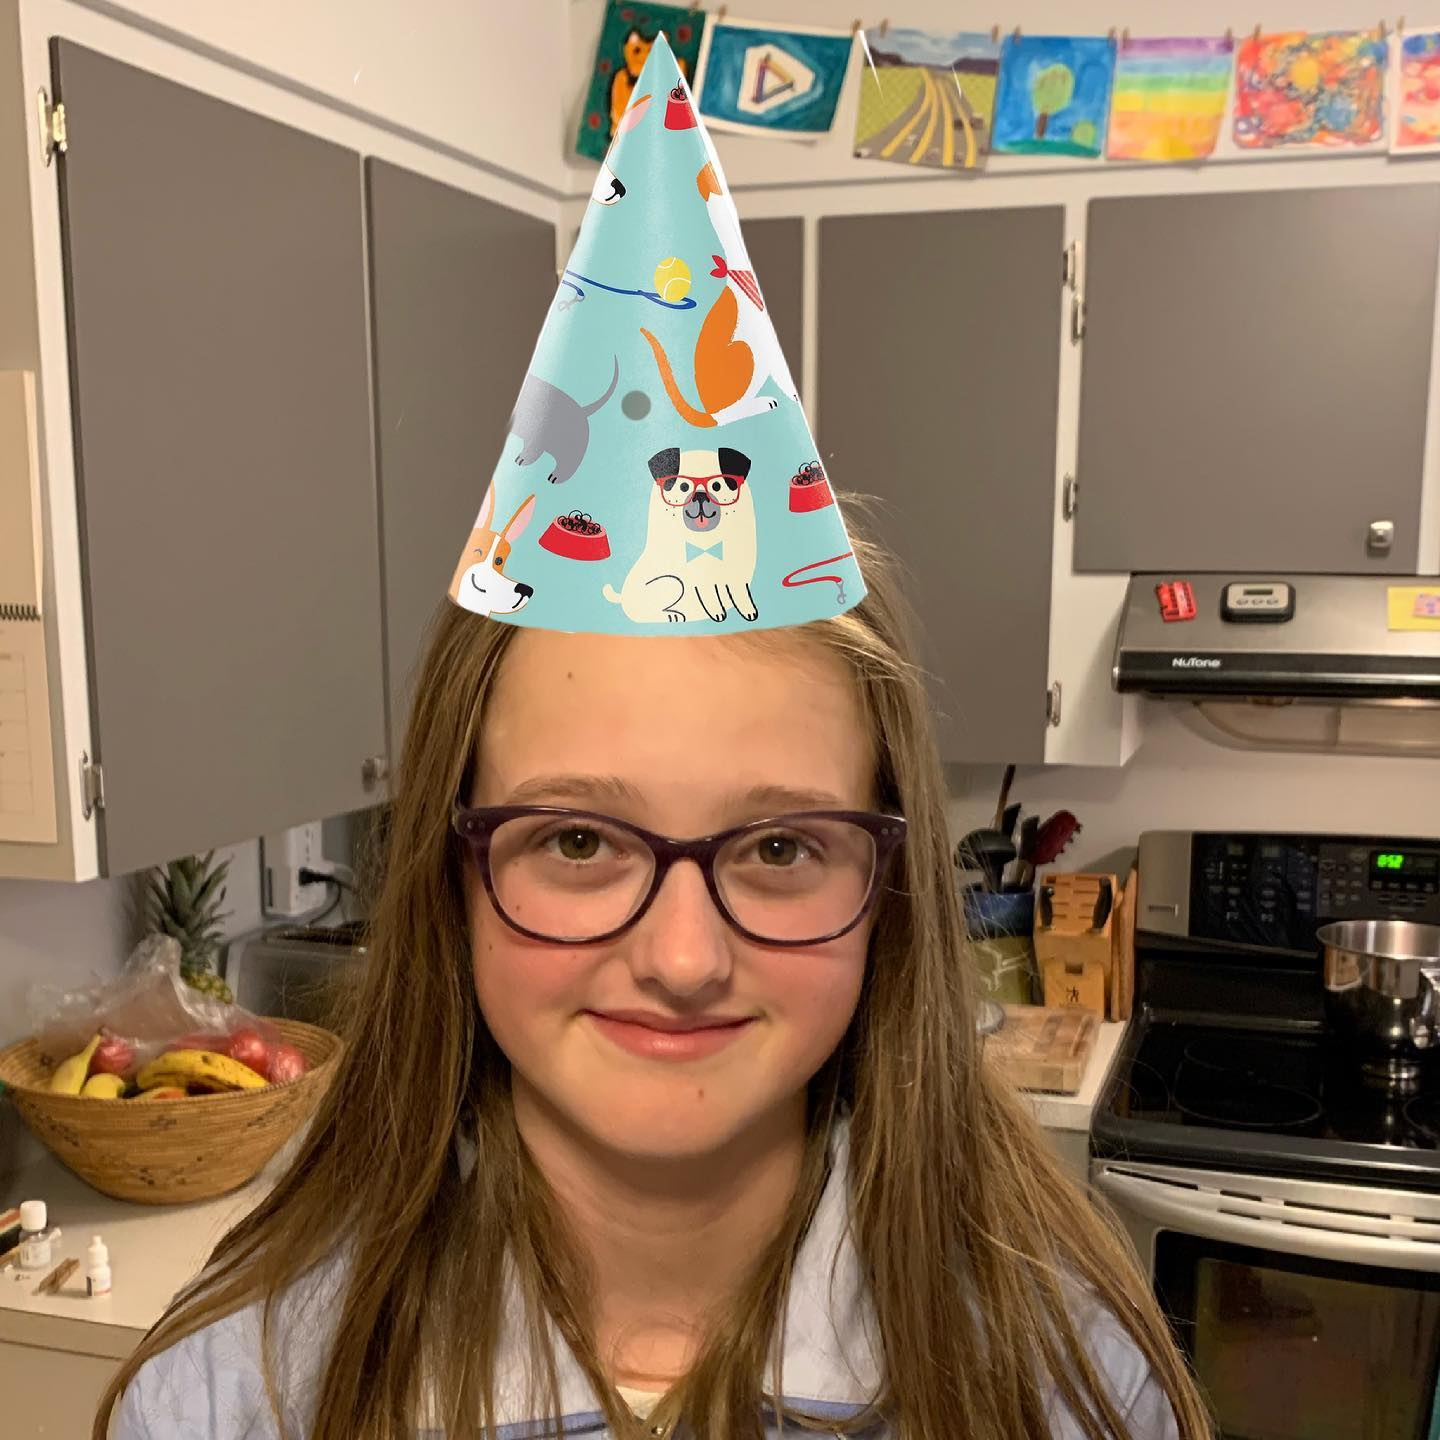 A big happy birthday to my daughter who is now 13! #happybirthday